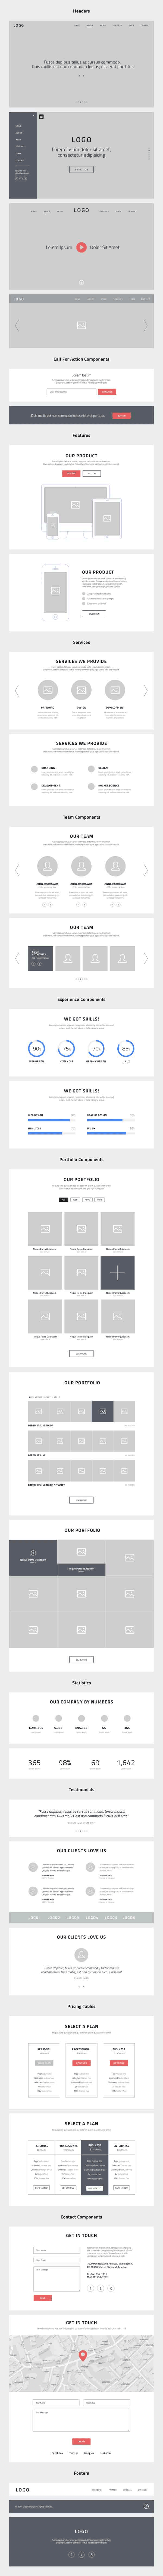 free oe page website wireframes